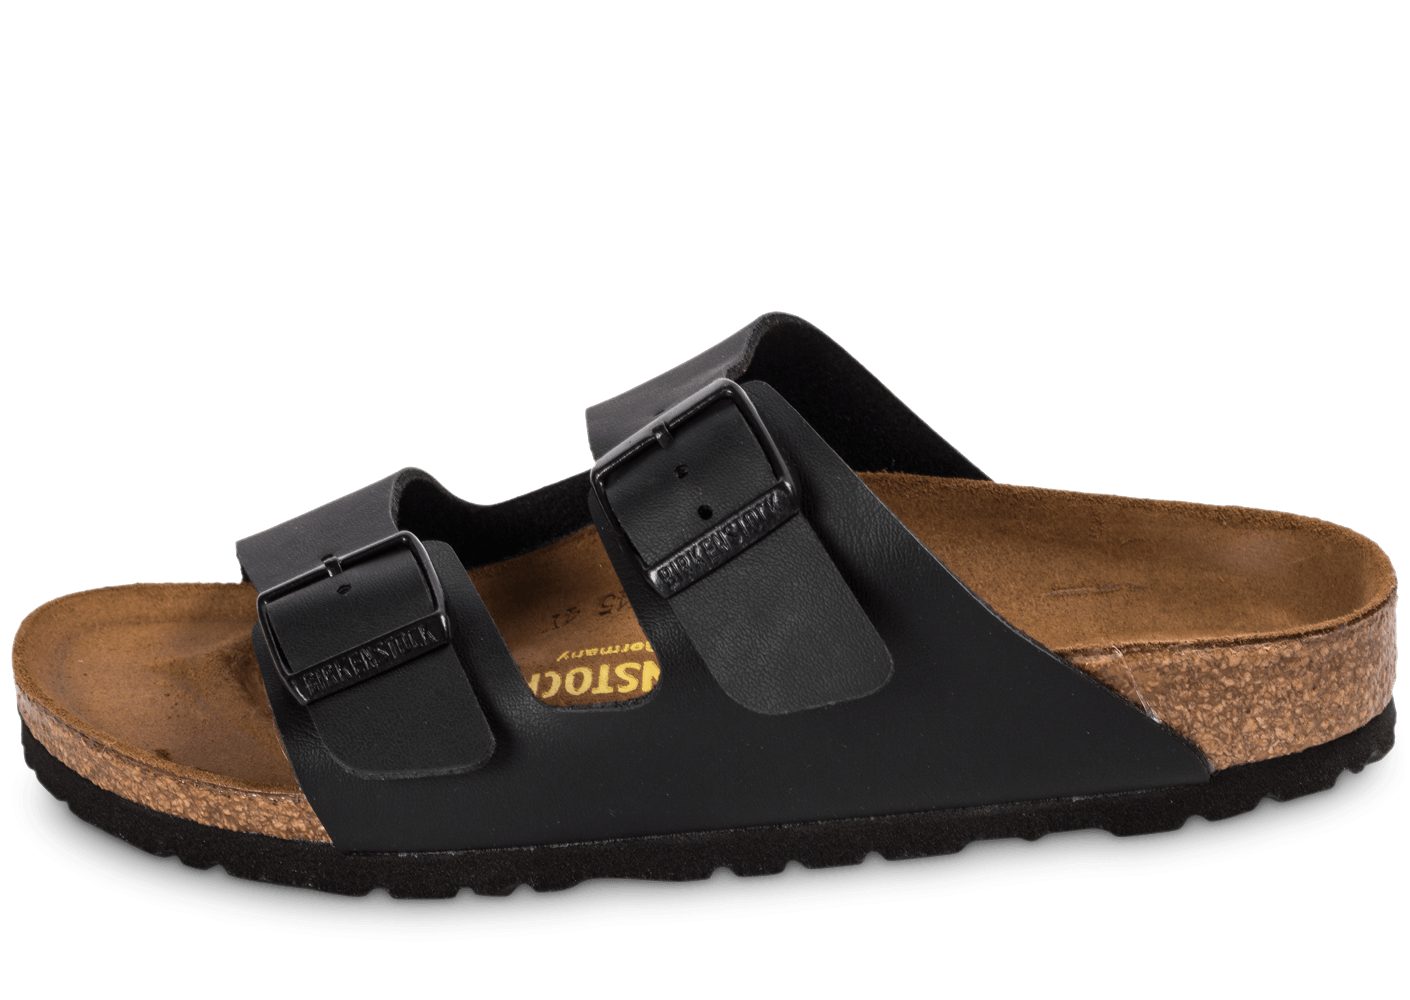 birkenstock arizona noire chaussures femme chausport. Black Bedroom Furniture Sets. Home Design Ideas